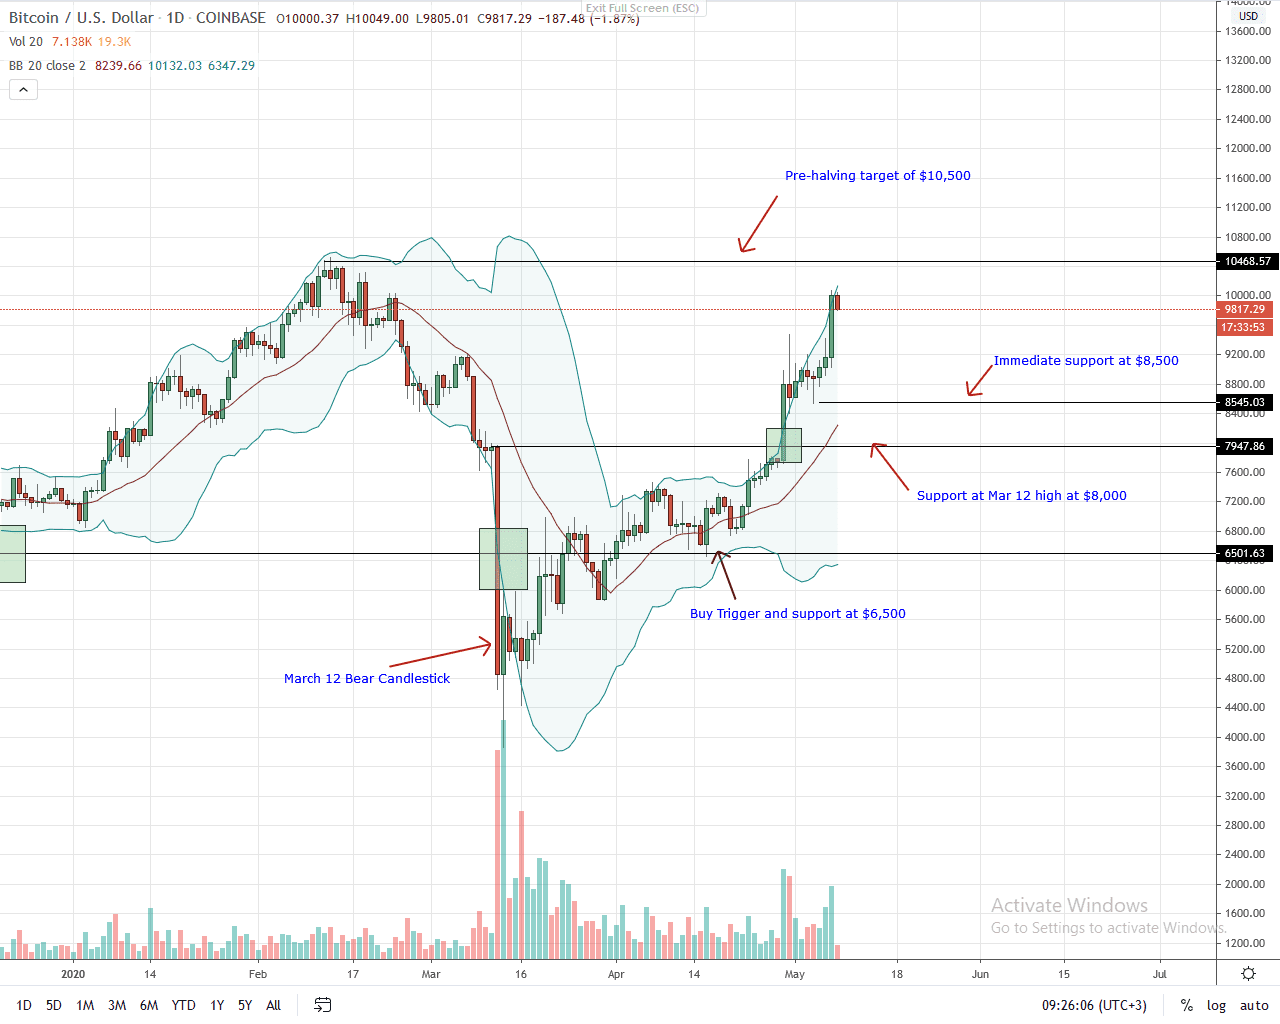 Bitcoin Daily Chart for May 8